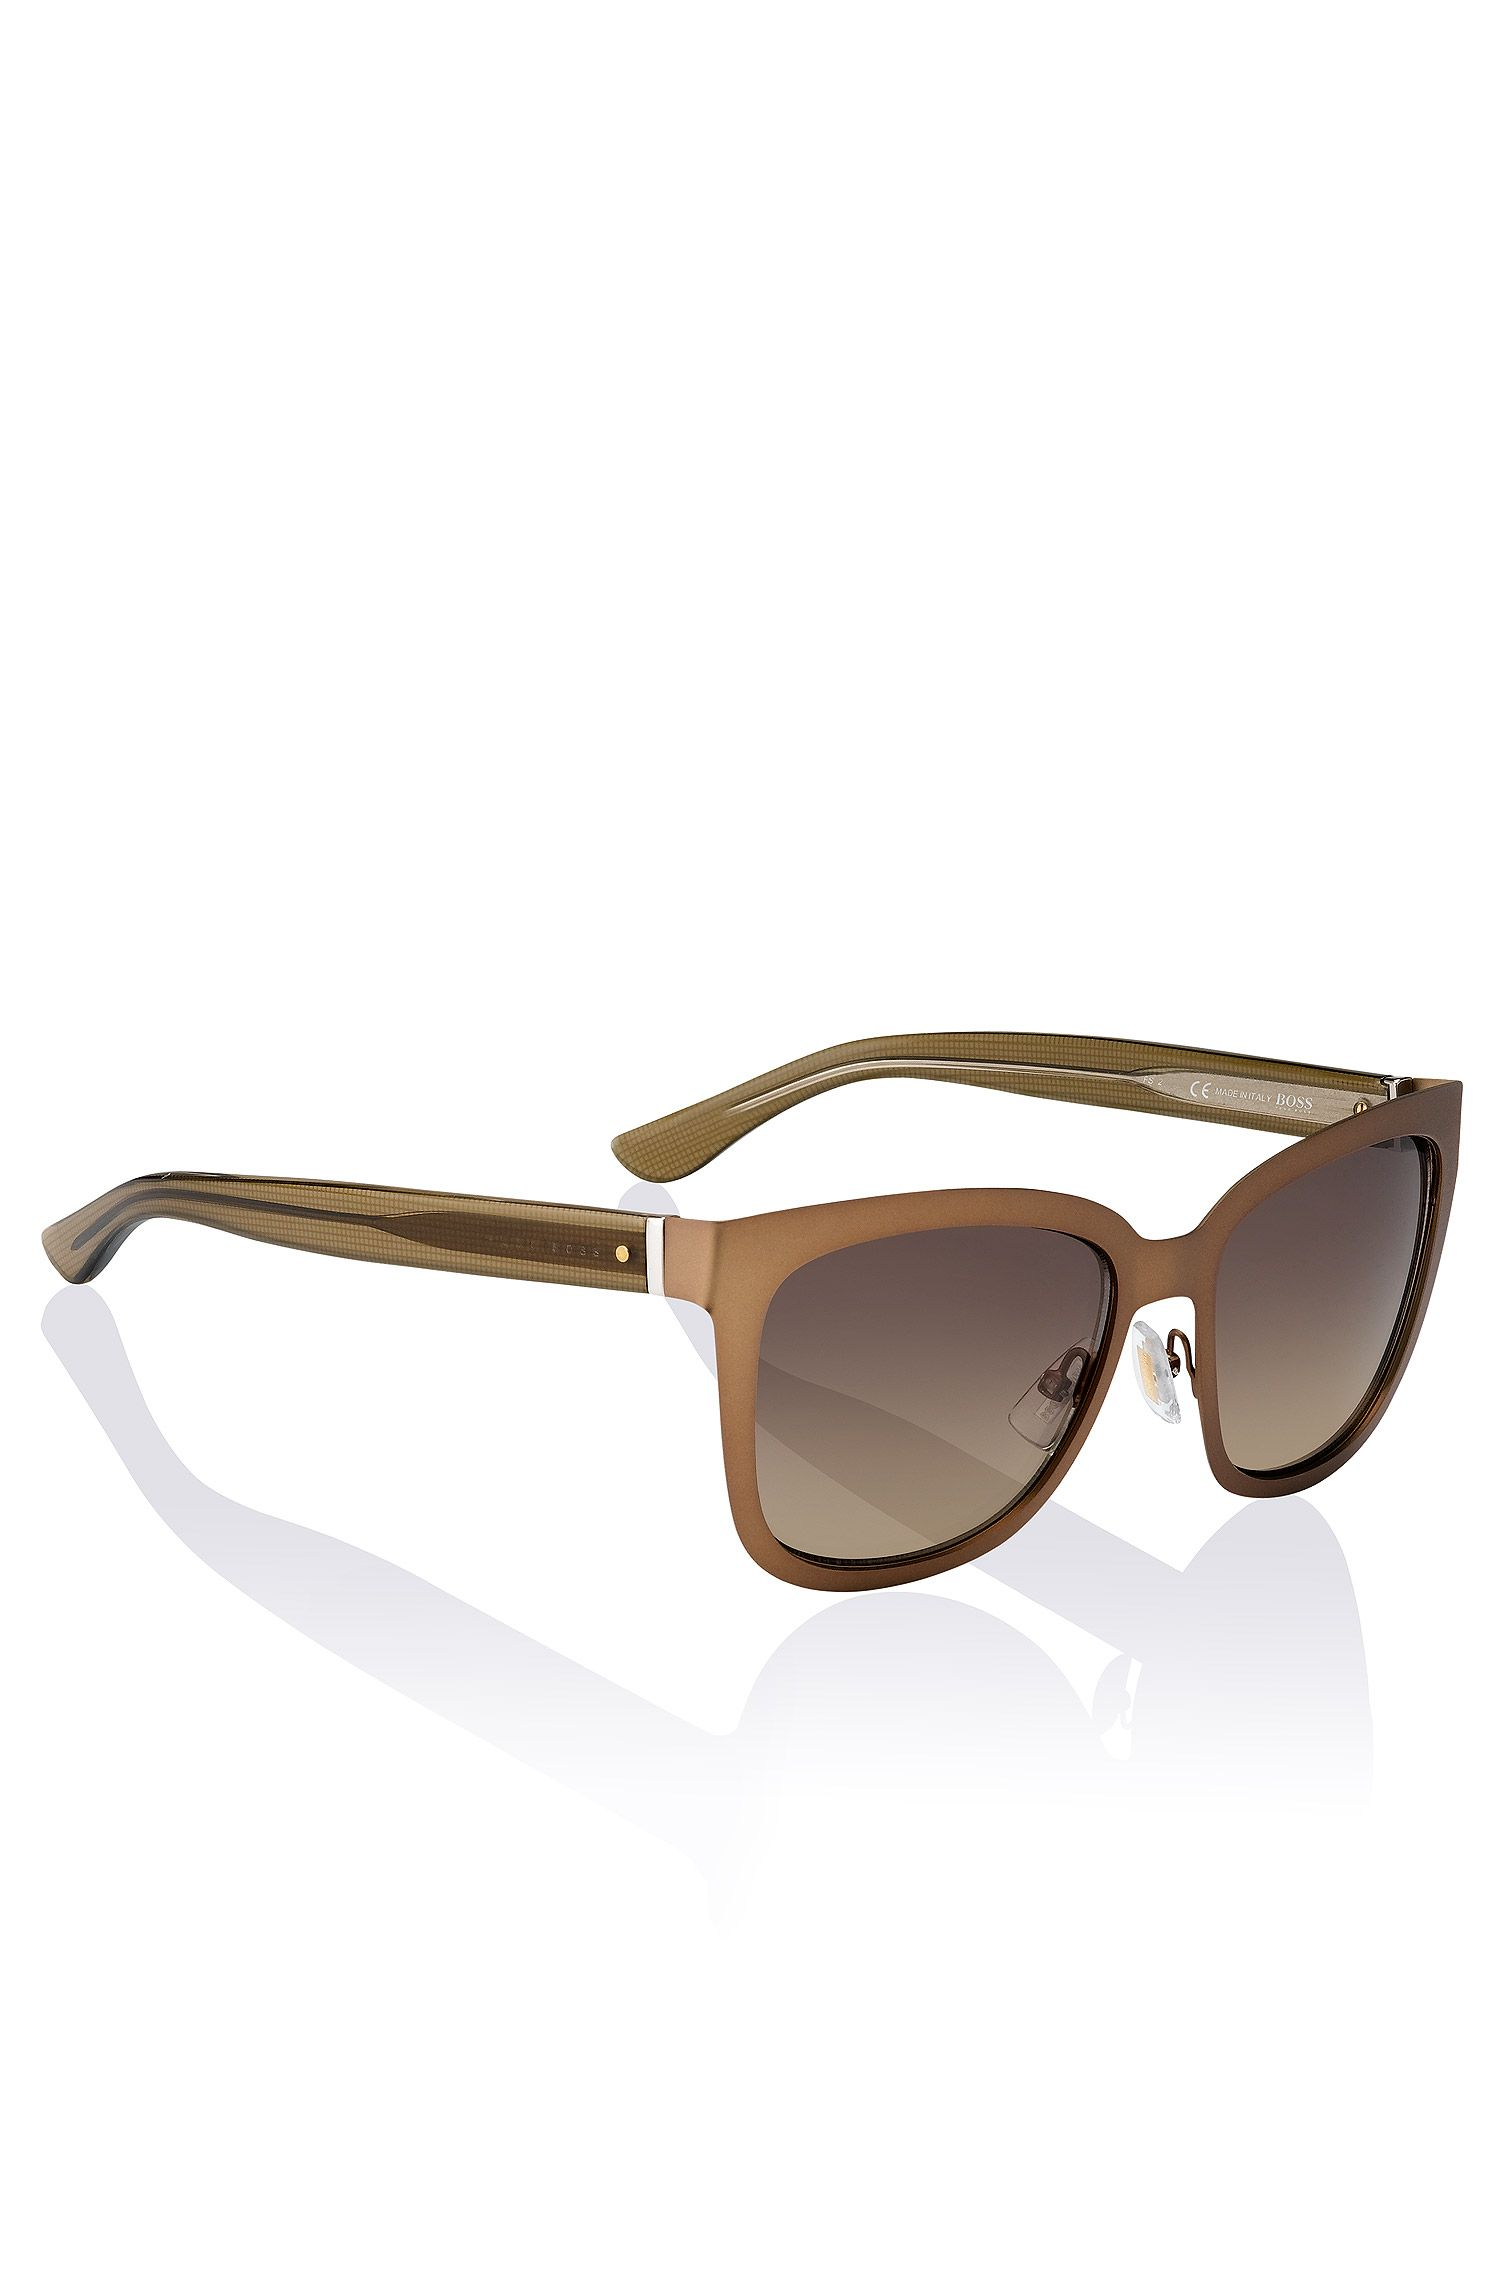 Sunglasses 'BOSS 0676' in acetate and metal